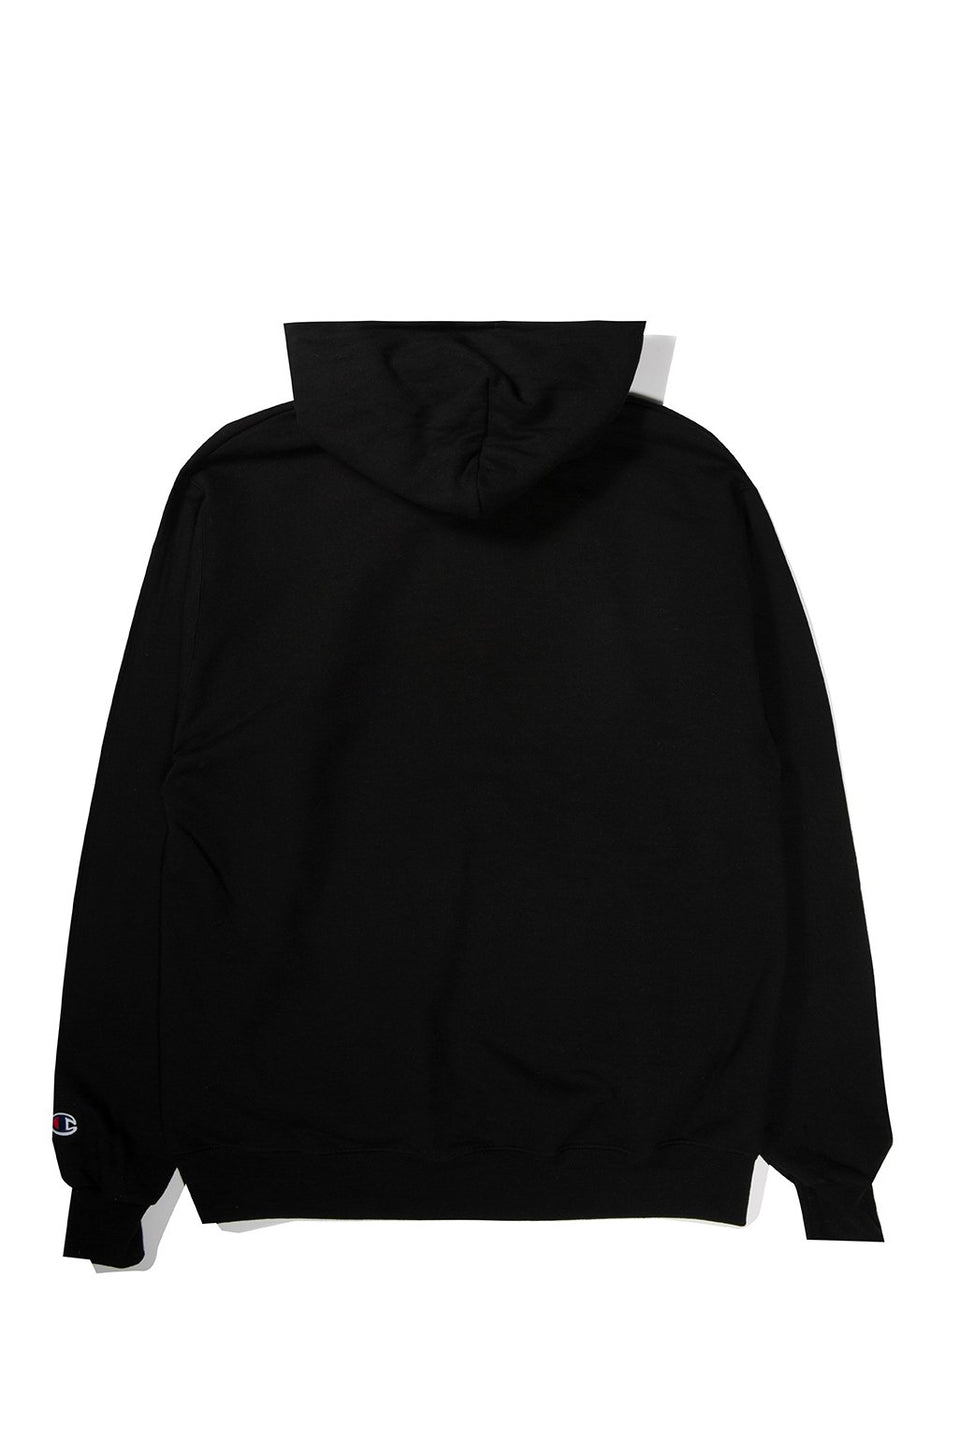 Toon Bar Champion Pullover Hoodie